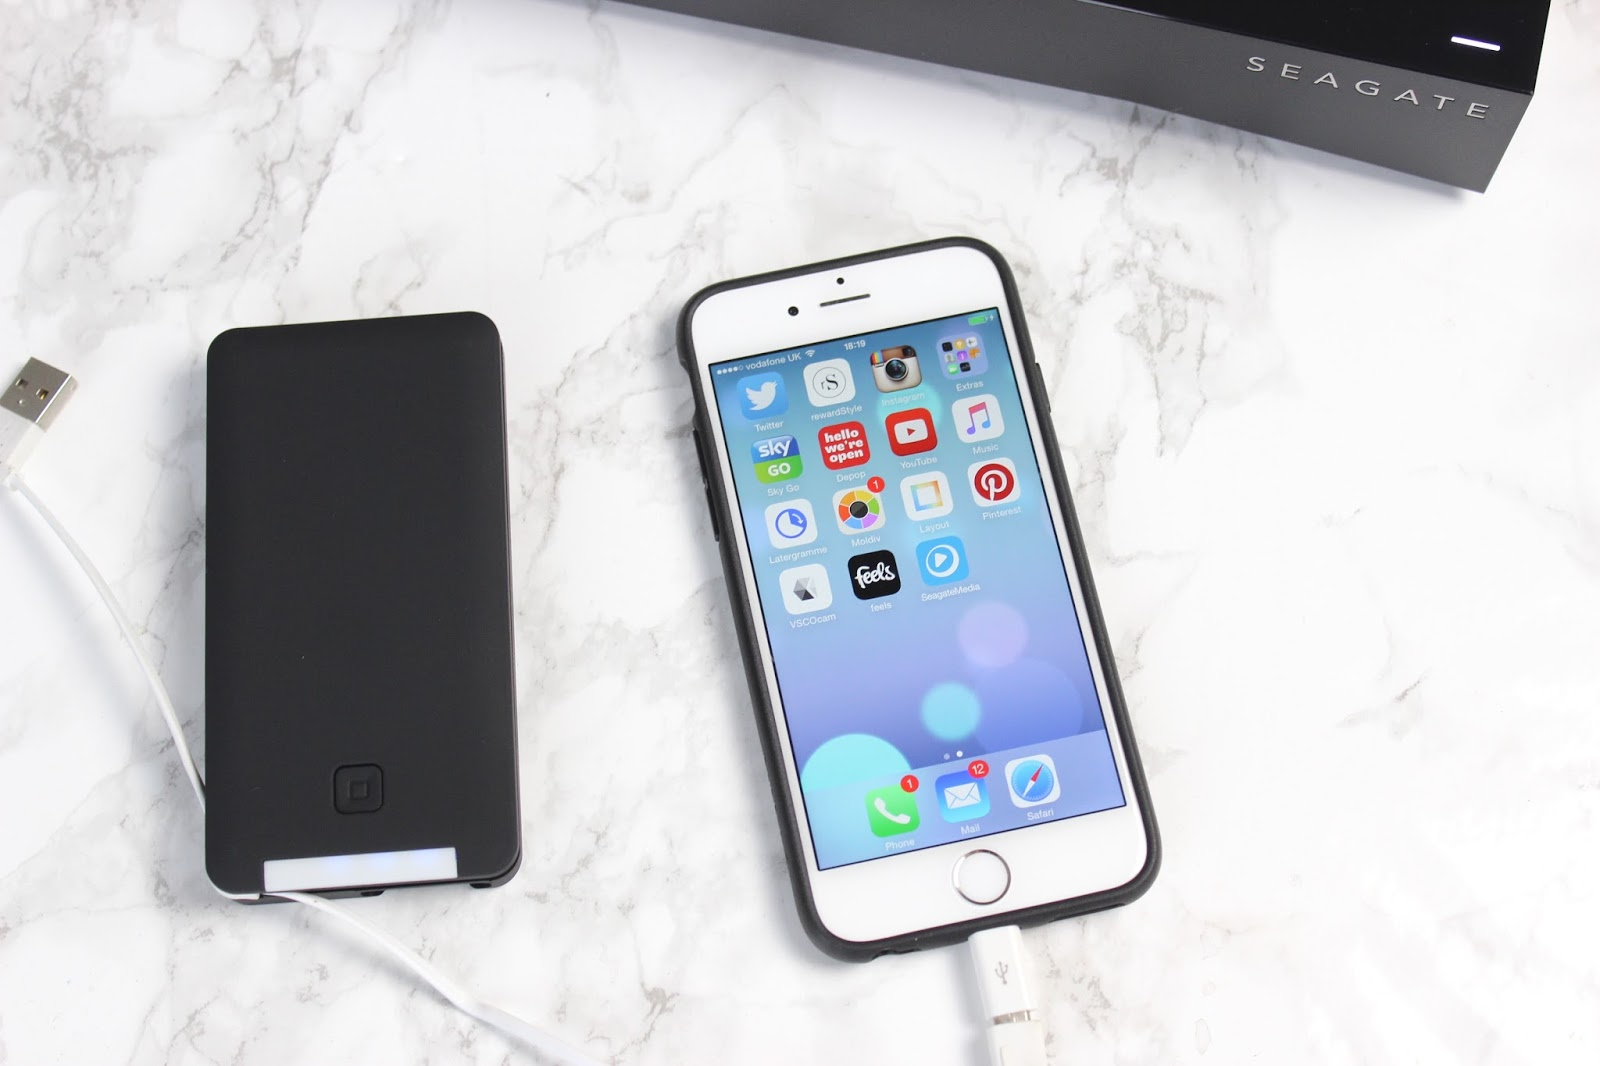 Powerpack battery charger review for iphone6